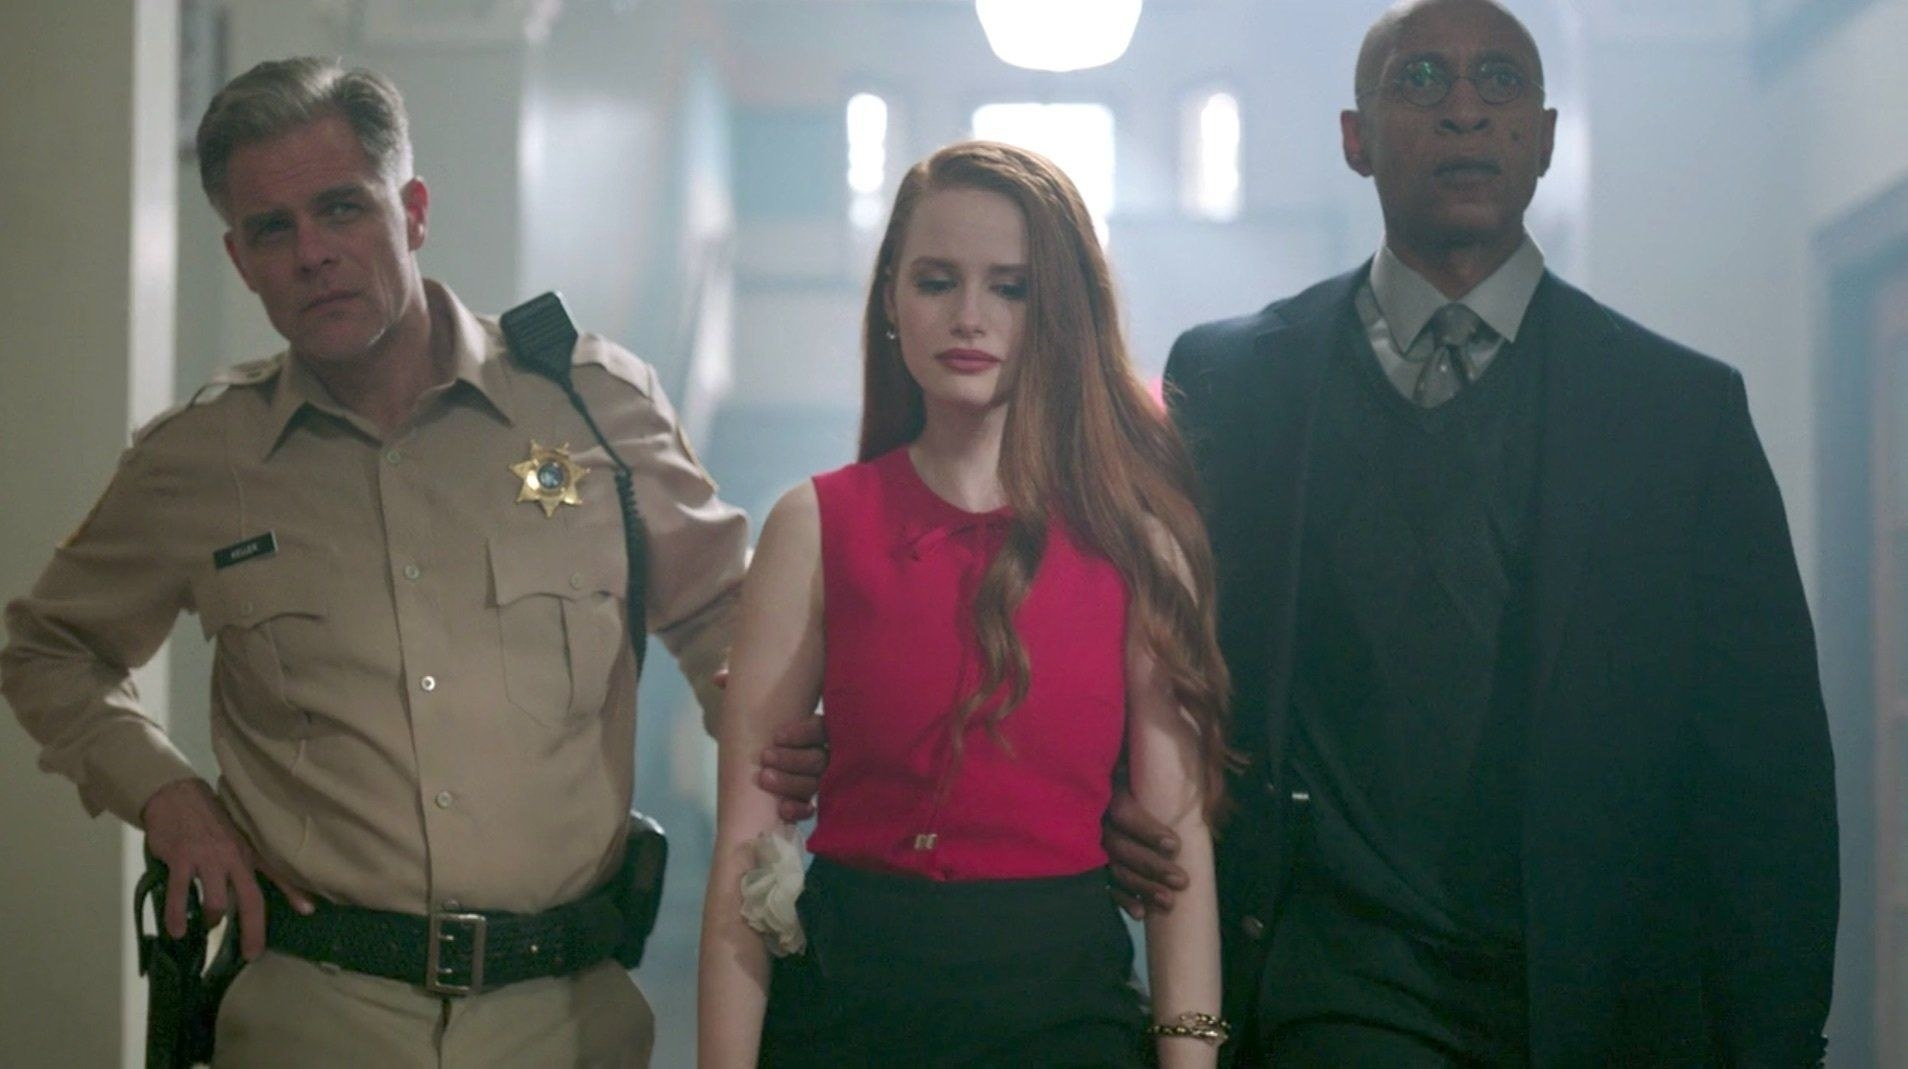 Cheryl being led away by the principal and Sheriff Keller